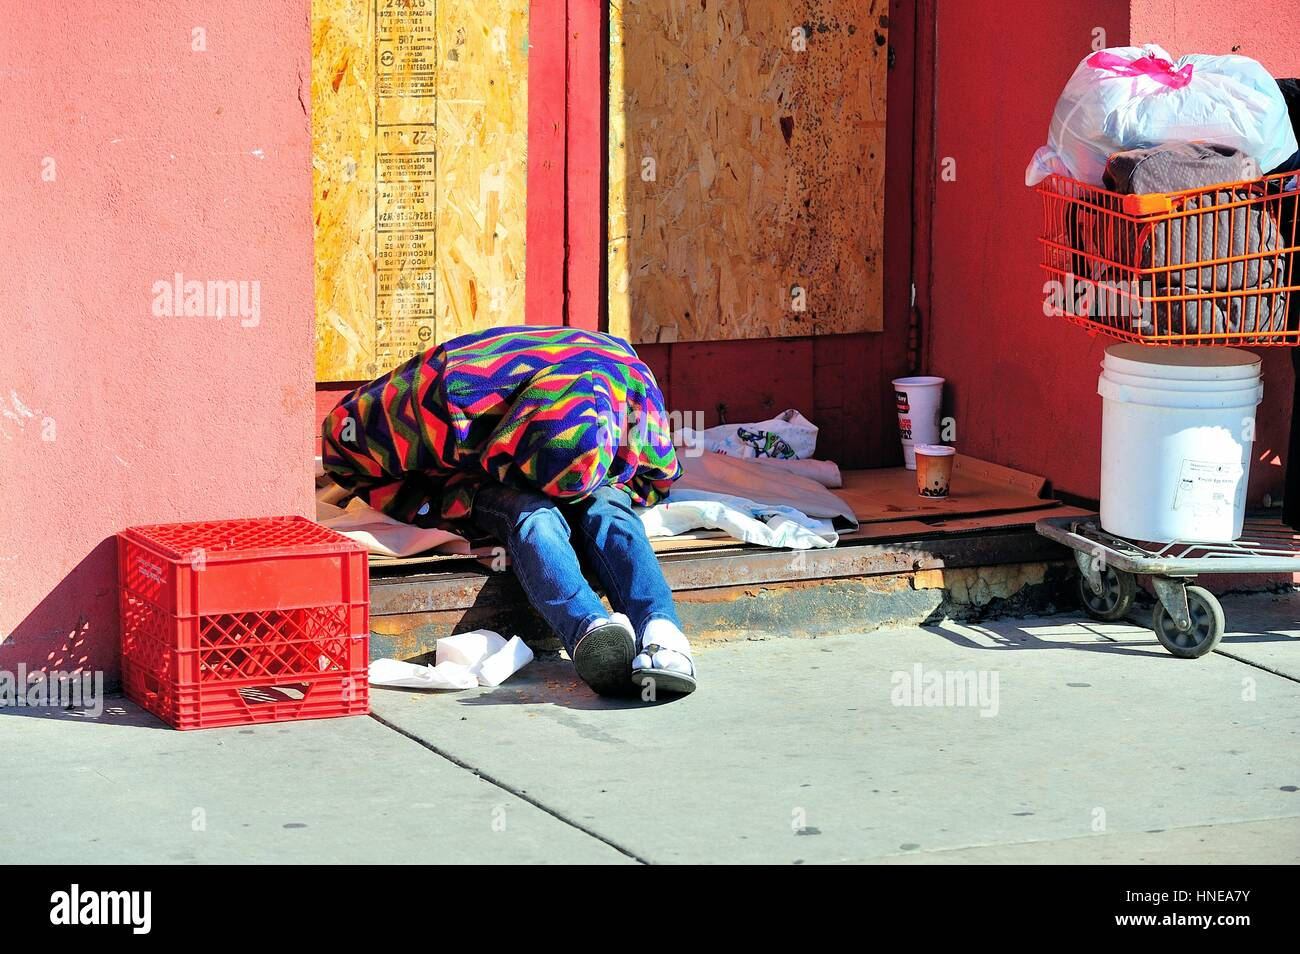 A homeless man among his belongings in a boarded up storefront entryway in Chicago's Chinatown neighborhood. - Stock Image